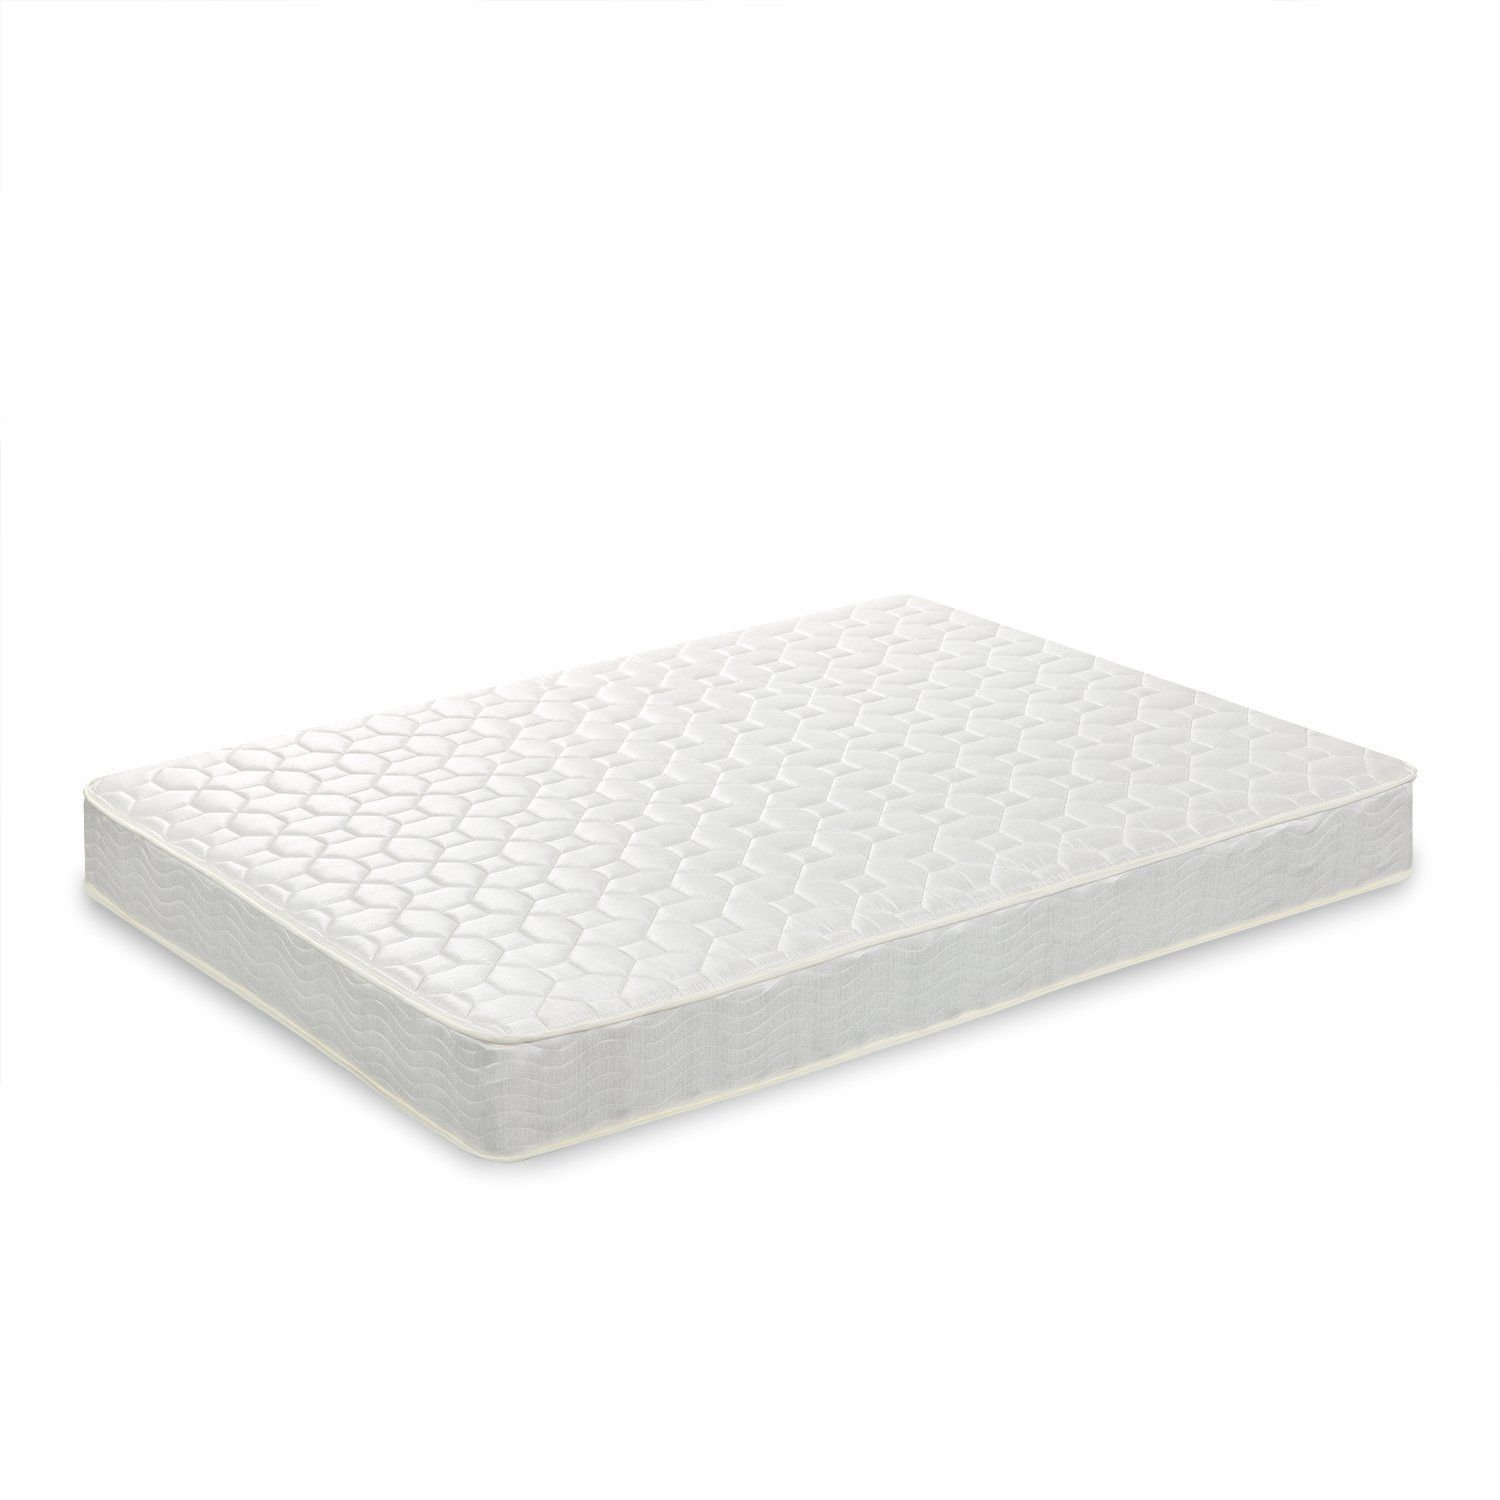 amazon pocketed spring 8 inch classic mattress king just 69 99